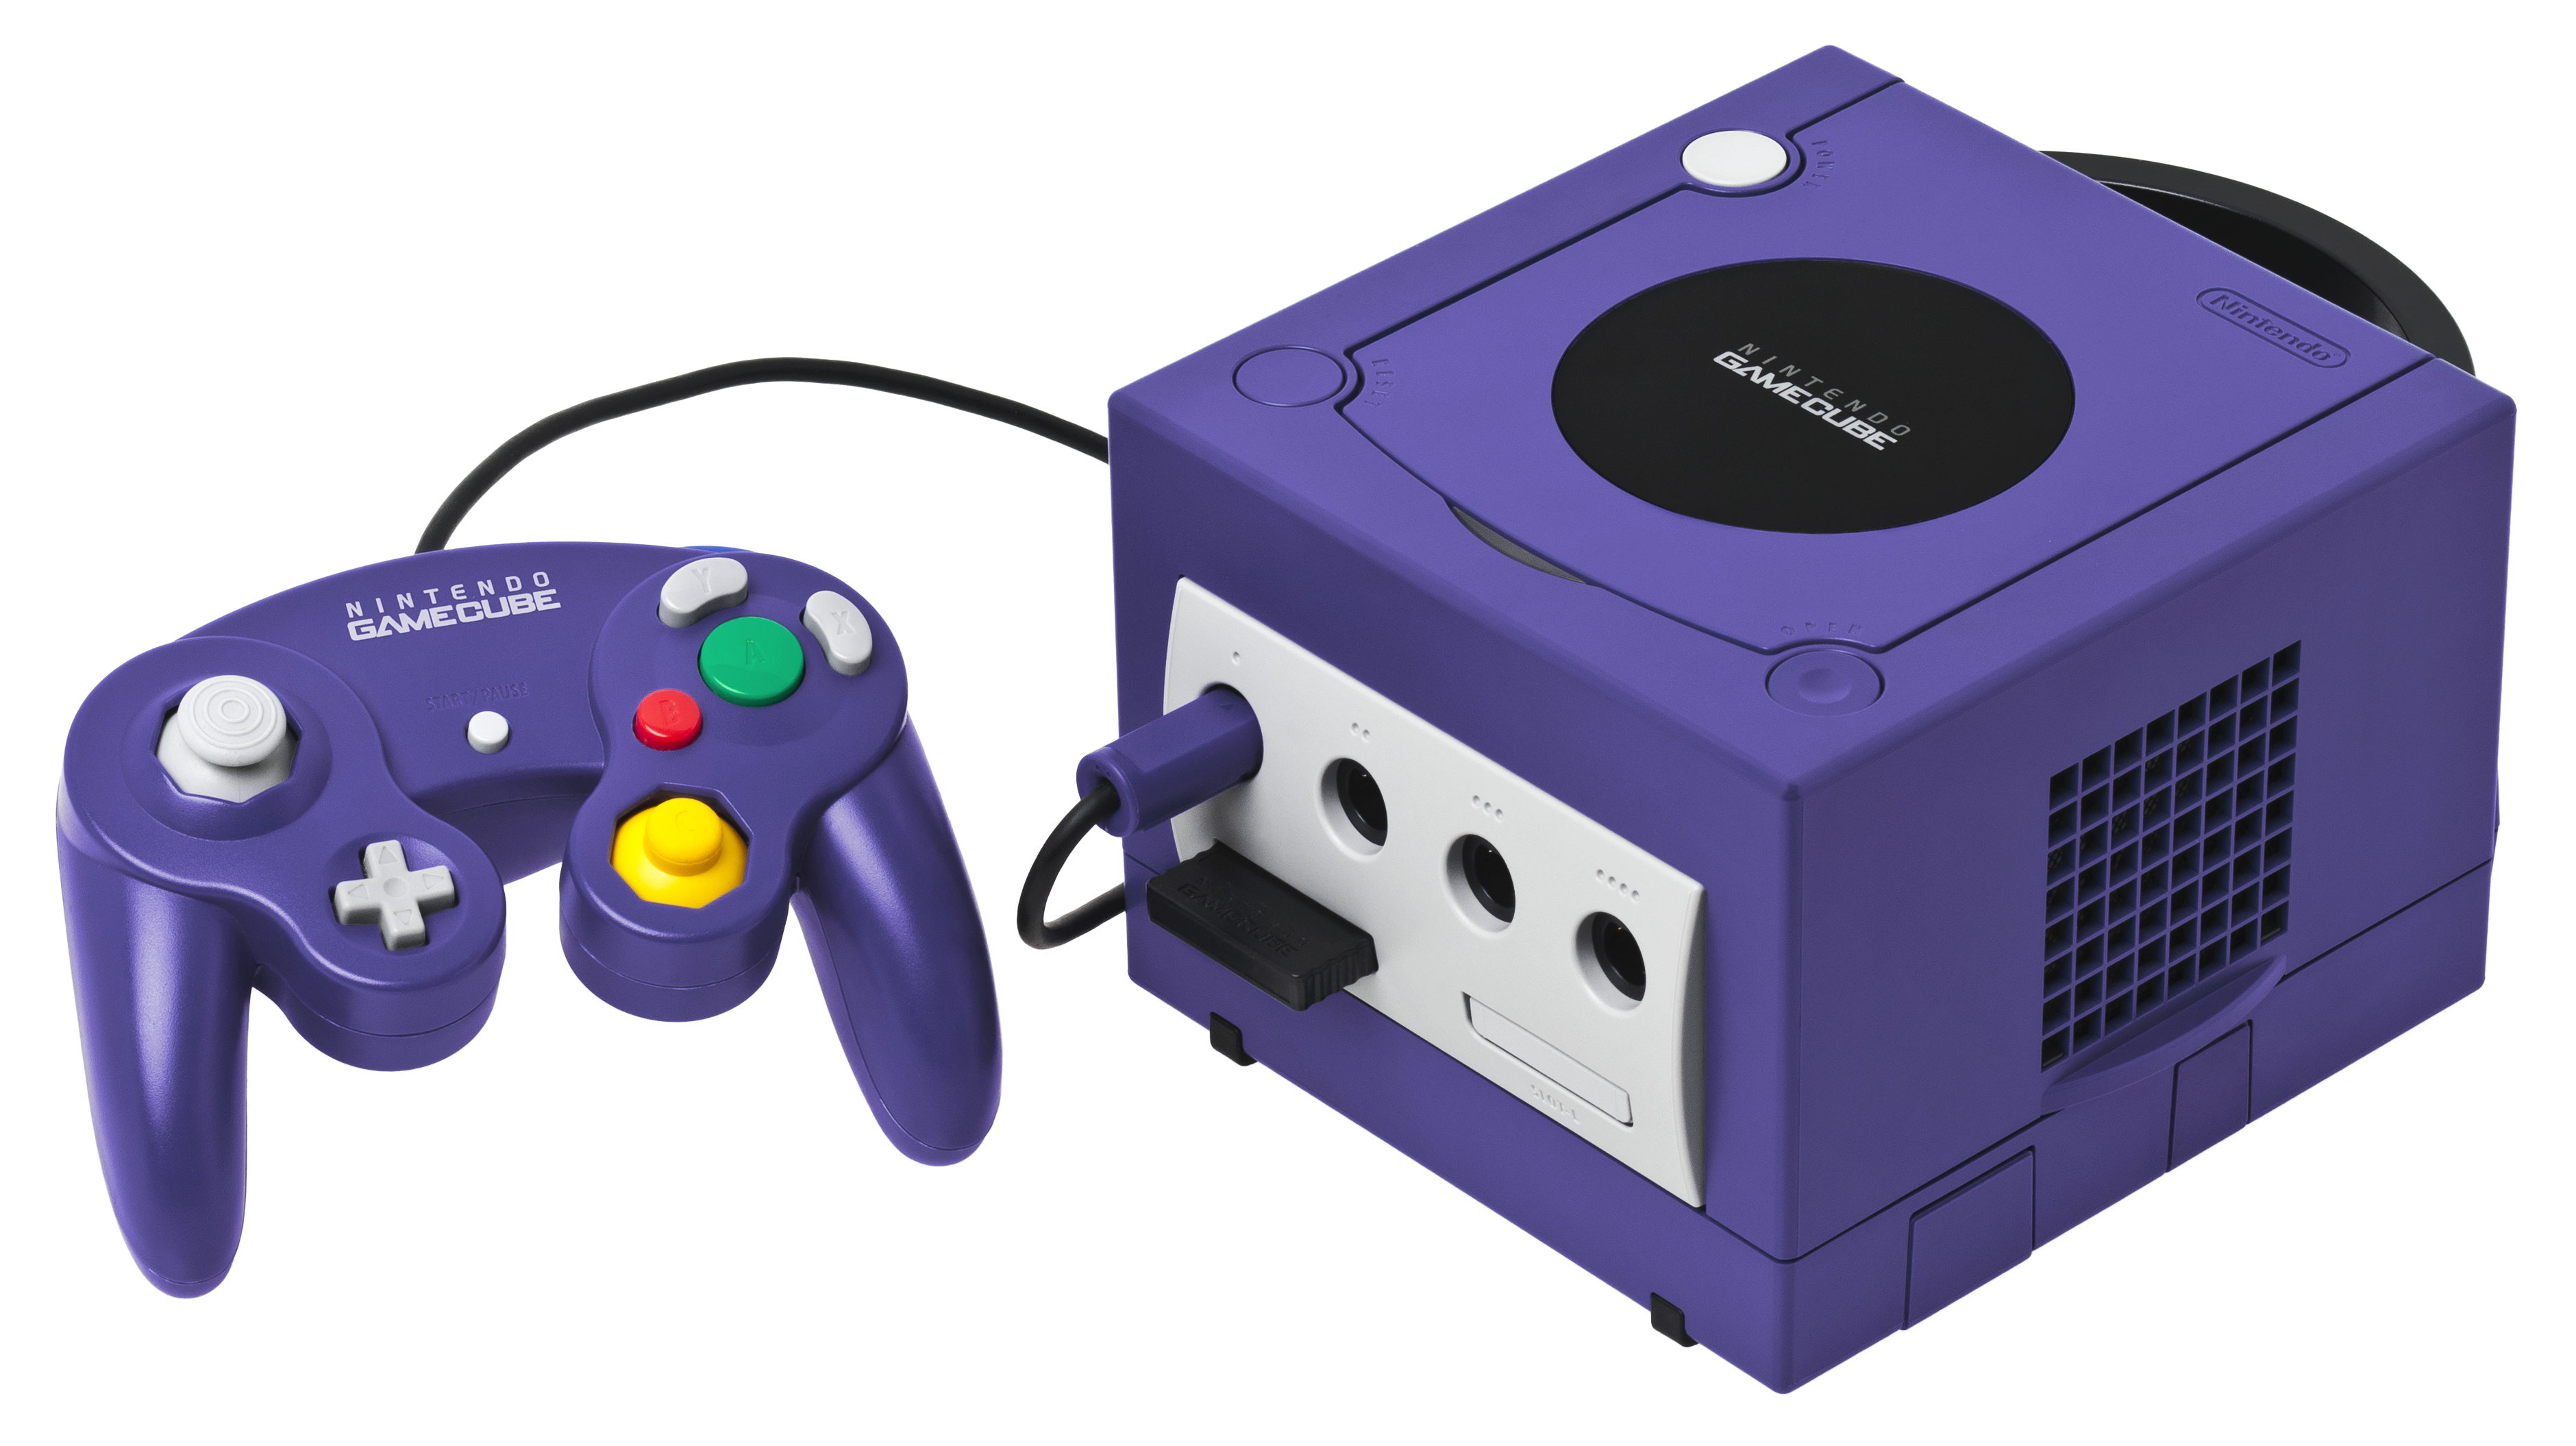 Game cube b buttons png. File gamecube console set